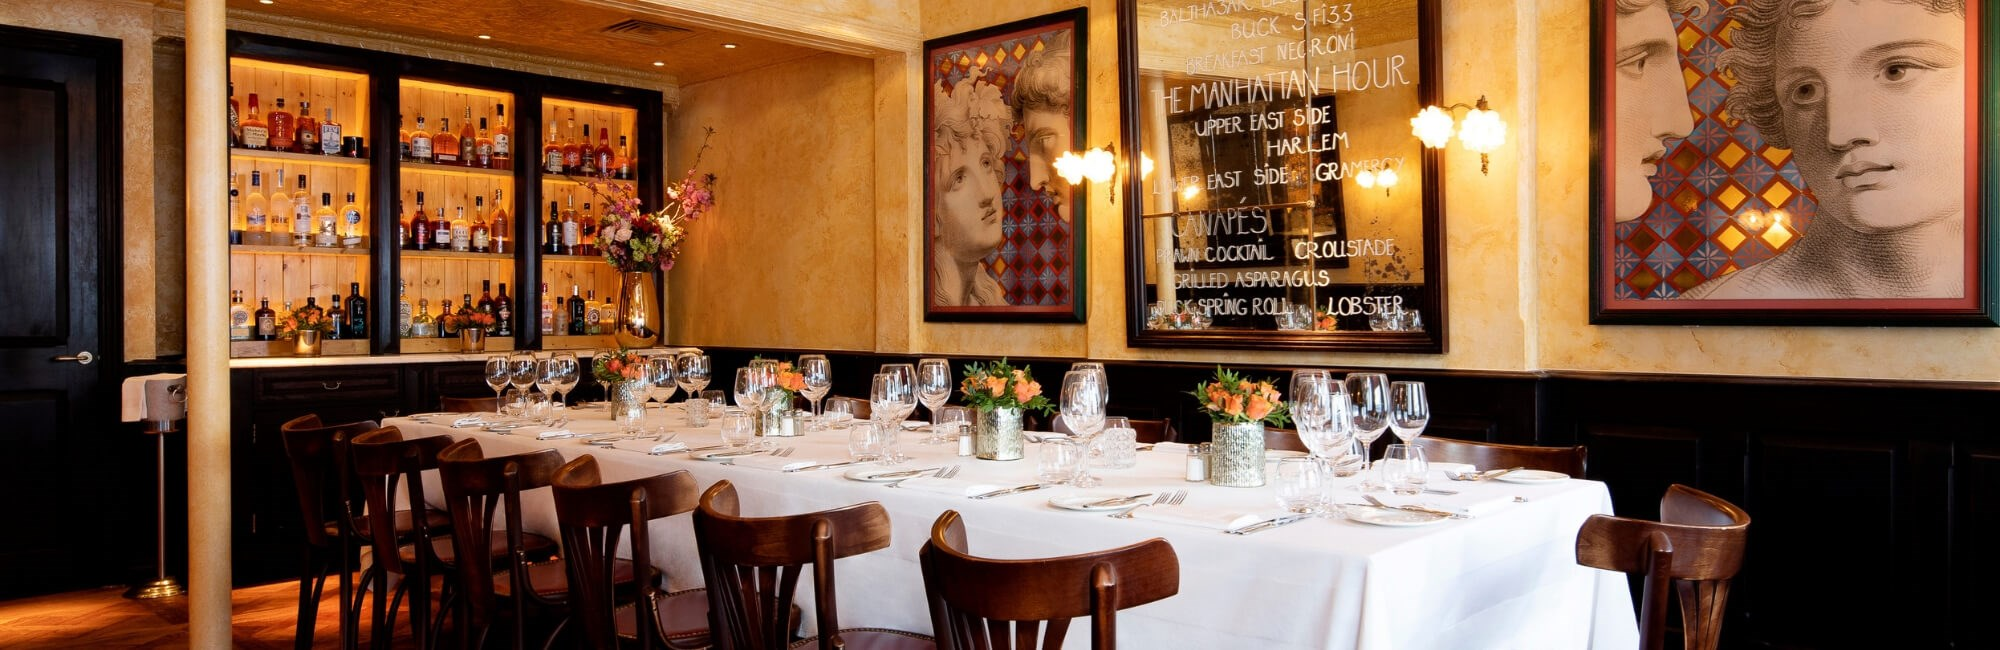 The small private dining room at Balthazar can accommodate up to 24 guests